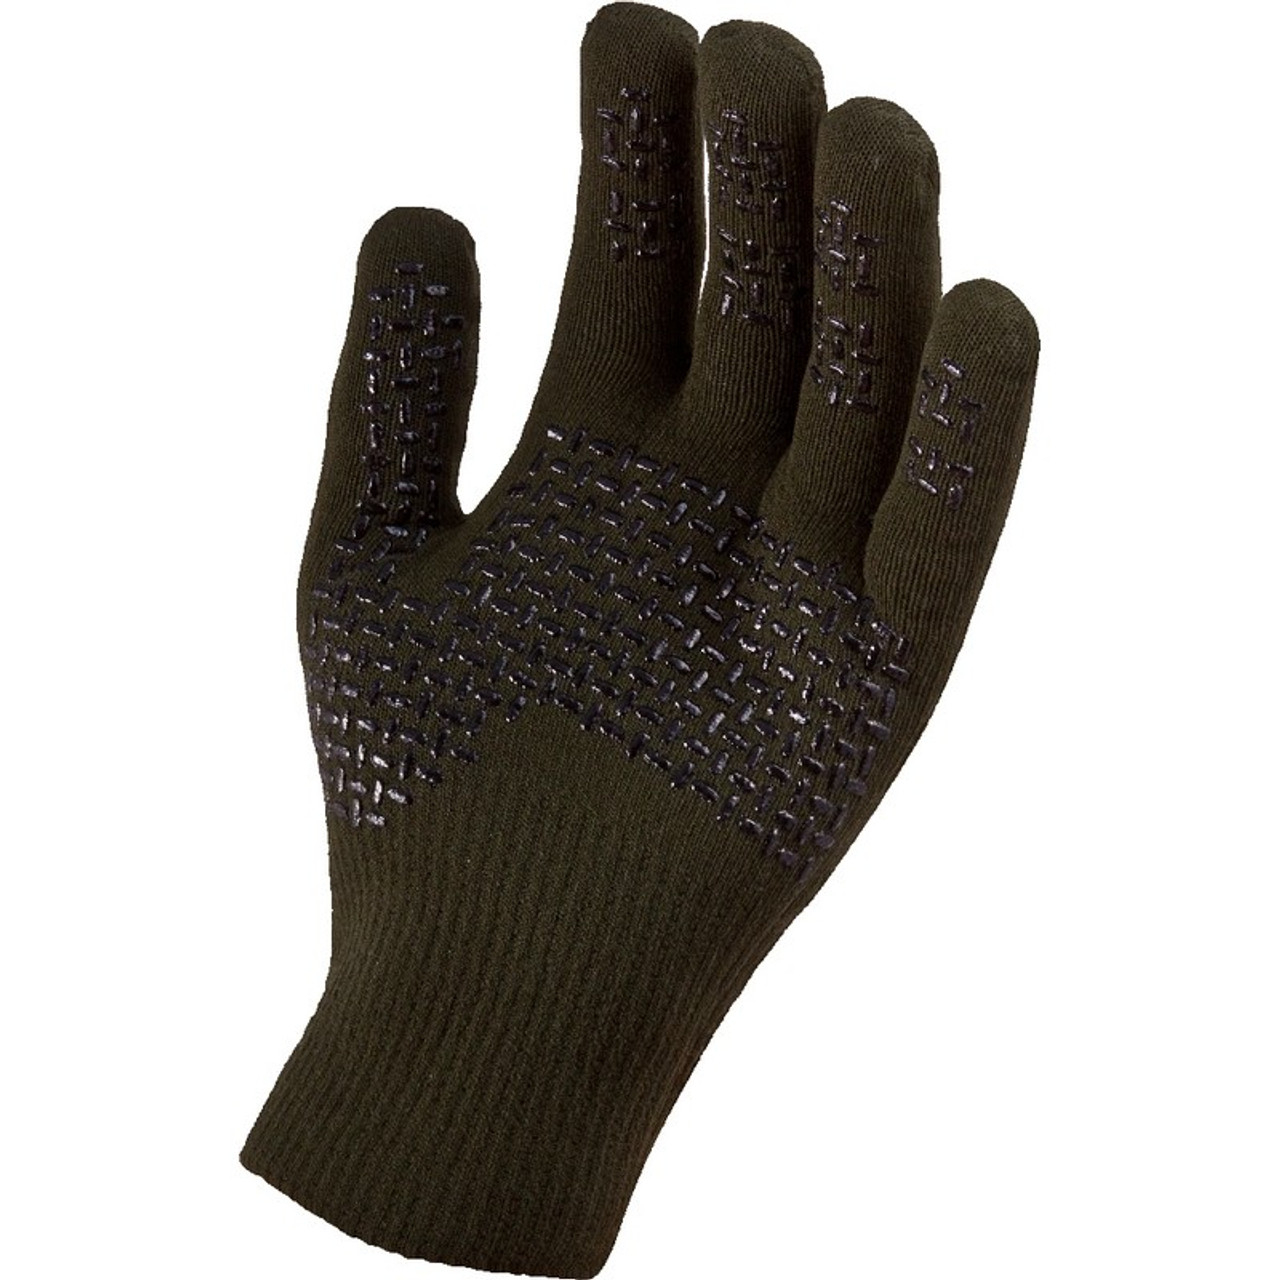 SealSkinz Ultra Grip Gloves, buy at cheap rates from bradford stalker